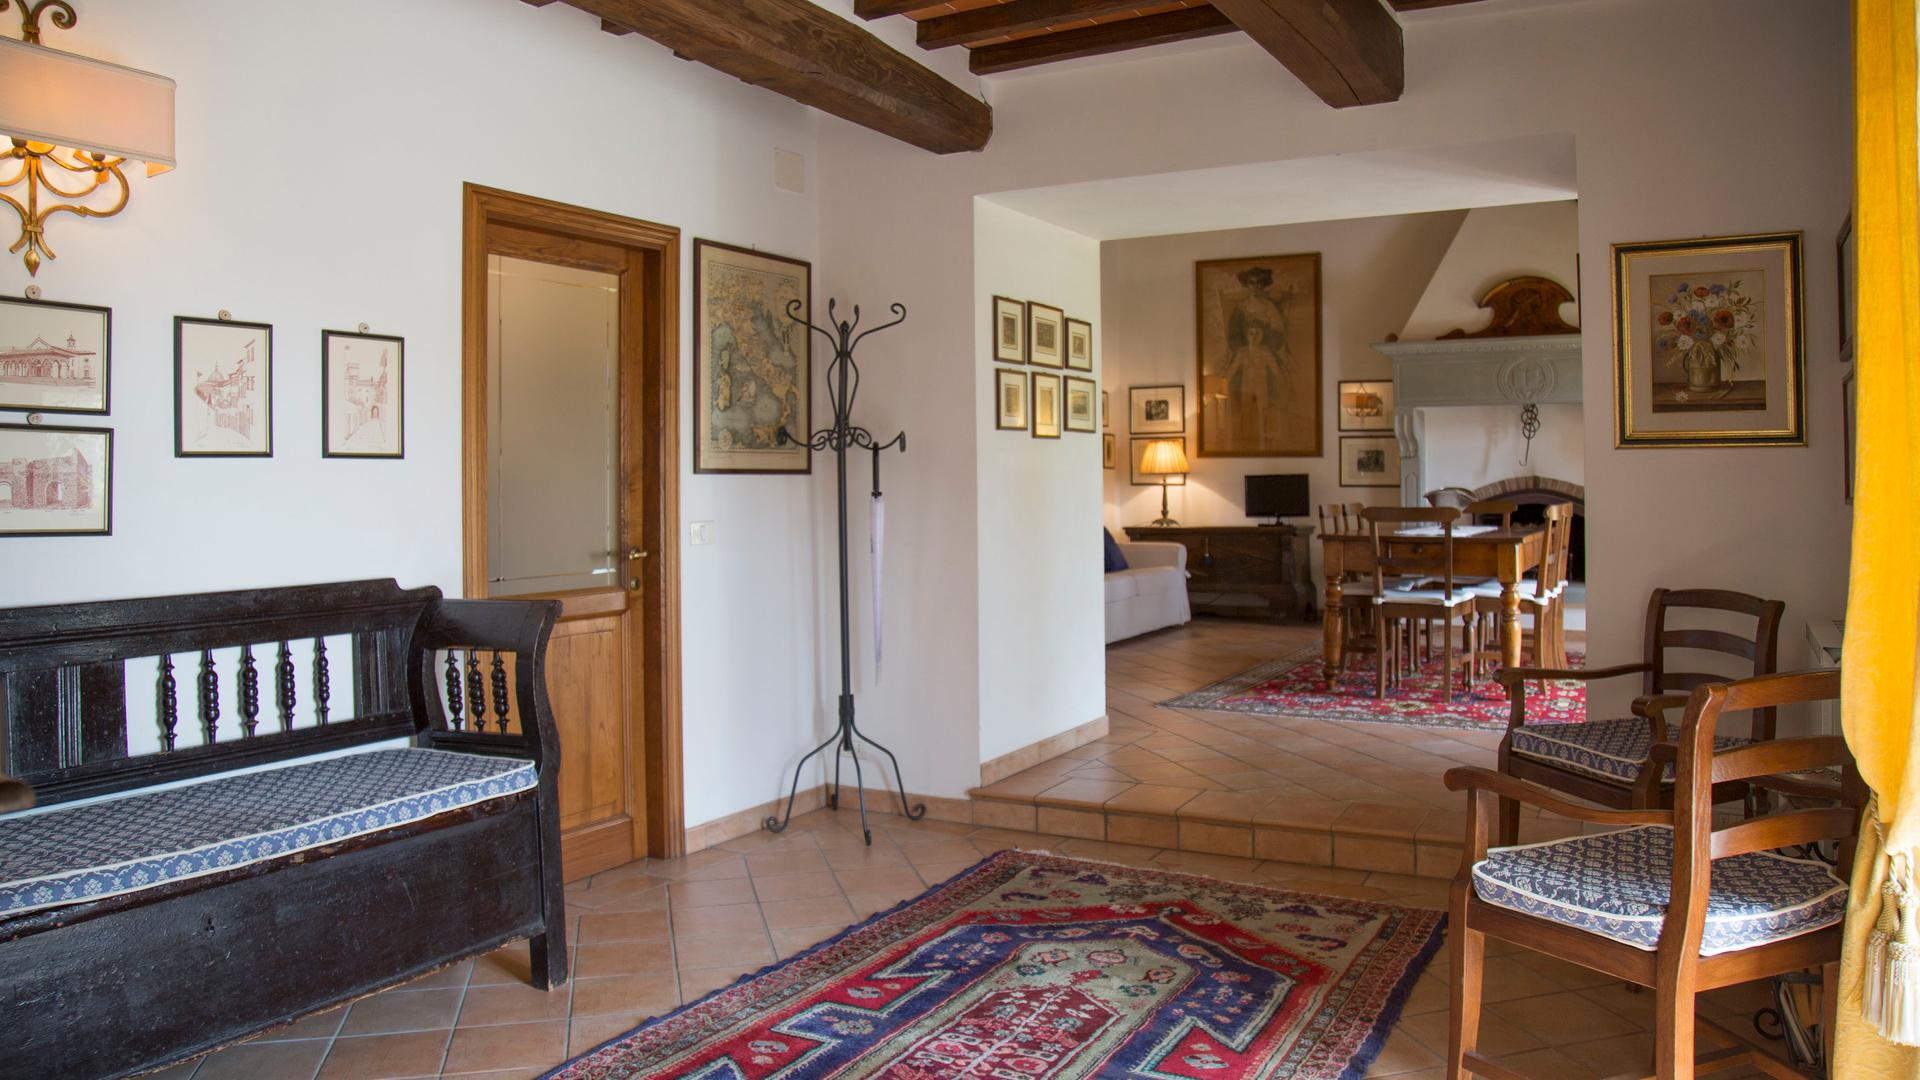 Apartments in Agriturismo with swimming pool in Cortona | Arezzo, Tuscany